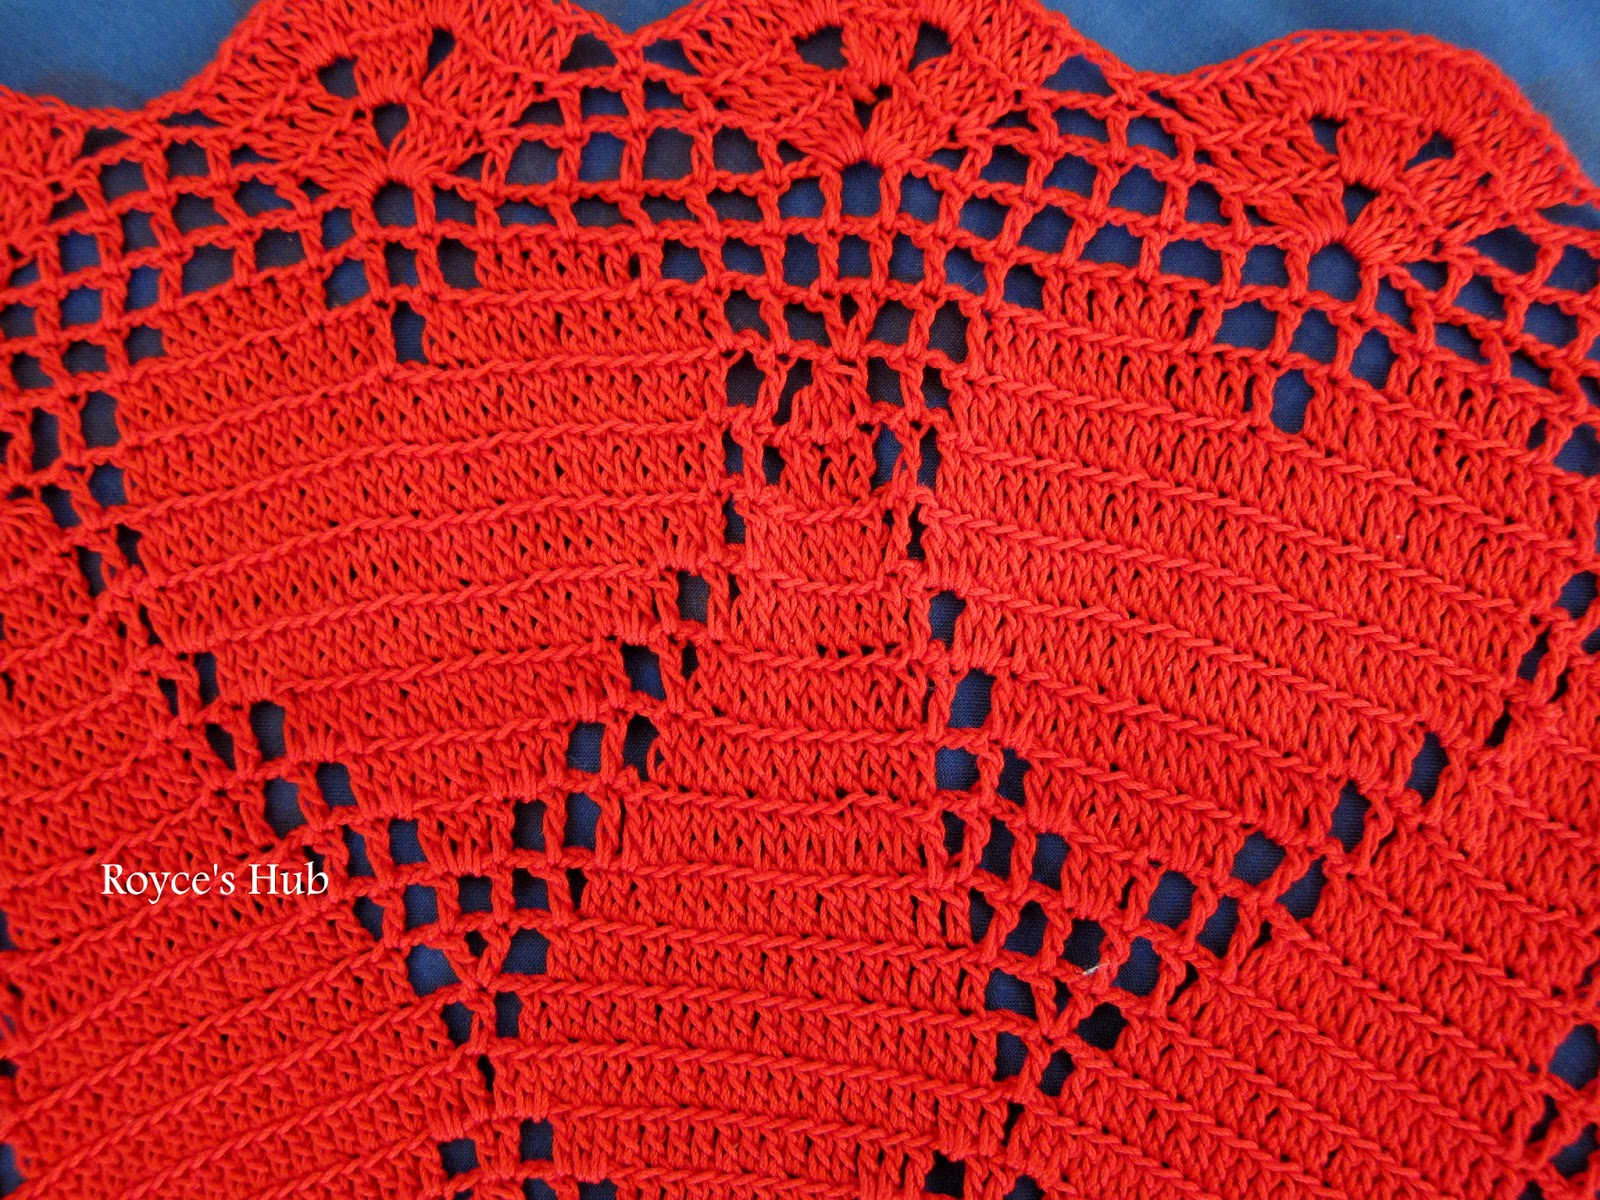 Royces hub filet crochet heart doily you can find the free pattern for this doily here bankloansurffo Images